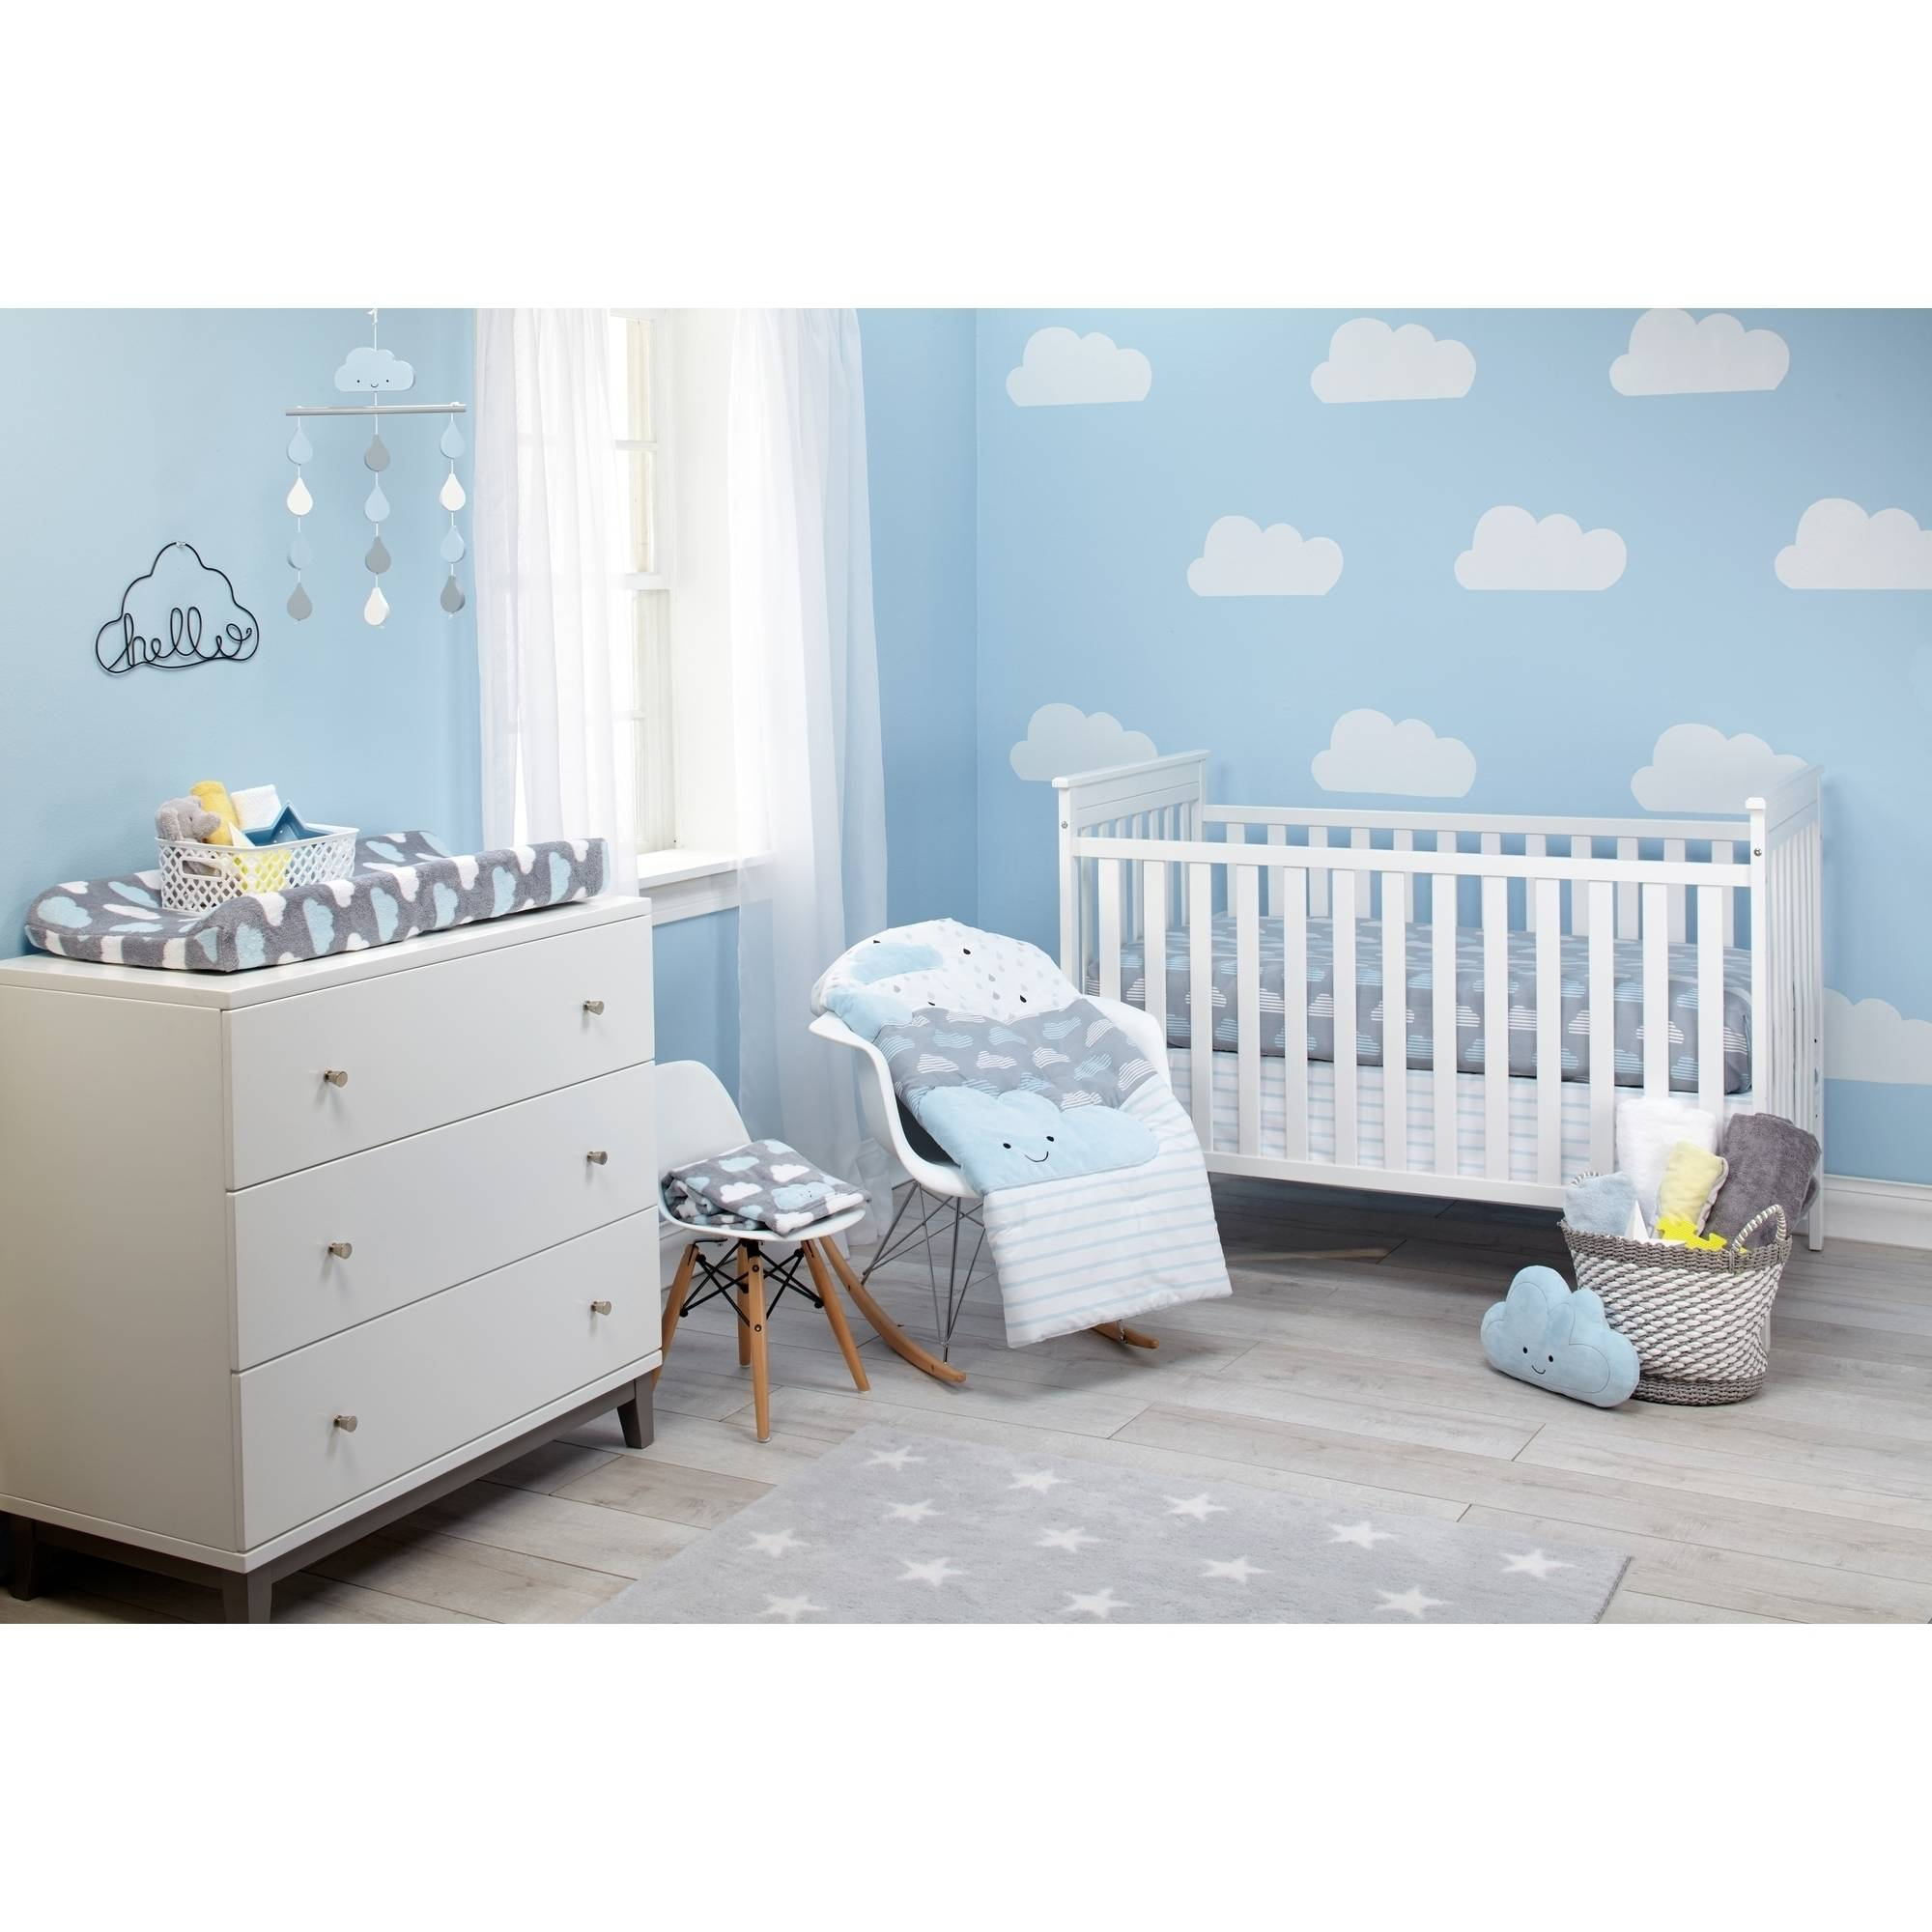 ter zig camouflage gray unique ncnhimm quilt pink of grey crib yellow pcs infant matter size baby sets camo piece design cute and set nursery does all full a elephant white your woodland inspiration bellissimainteriors girl zag bedding